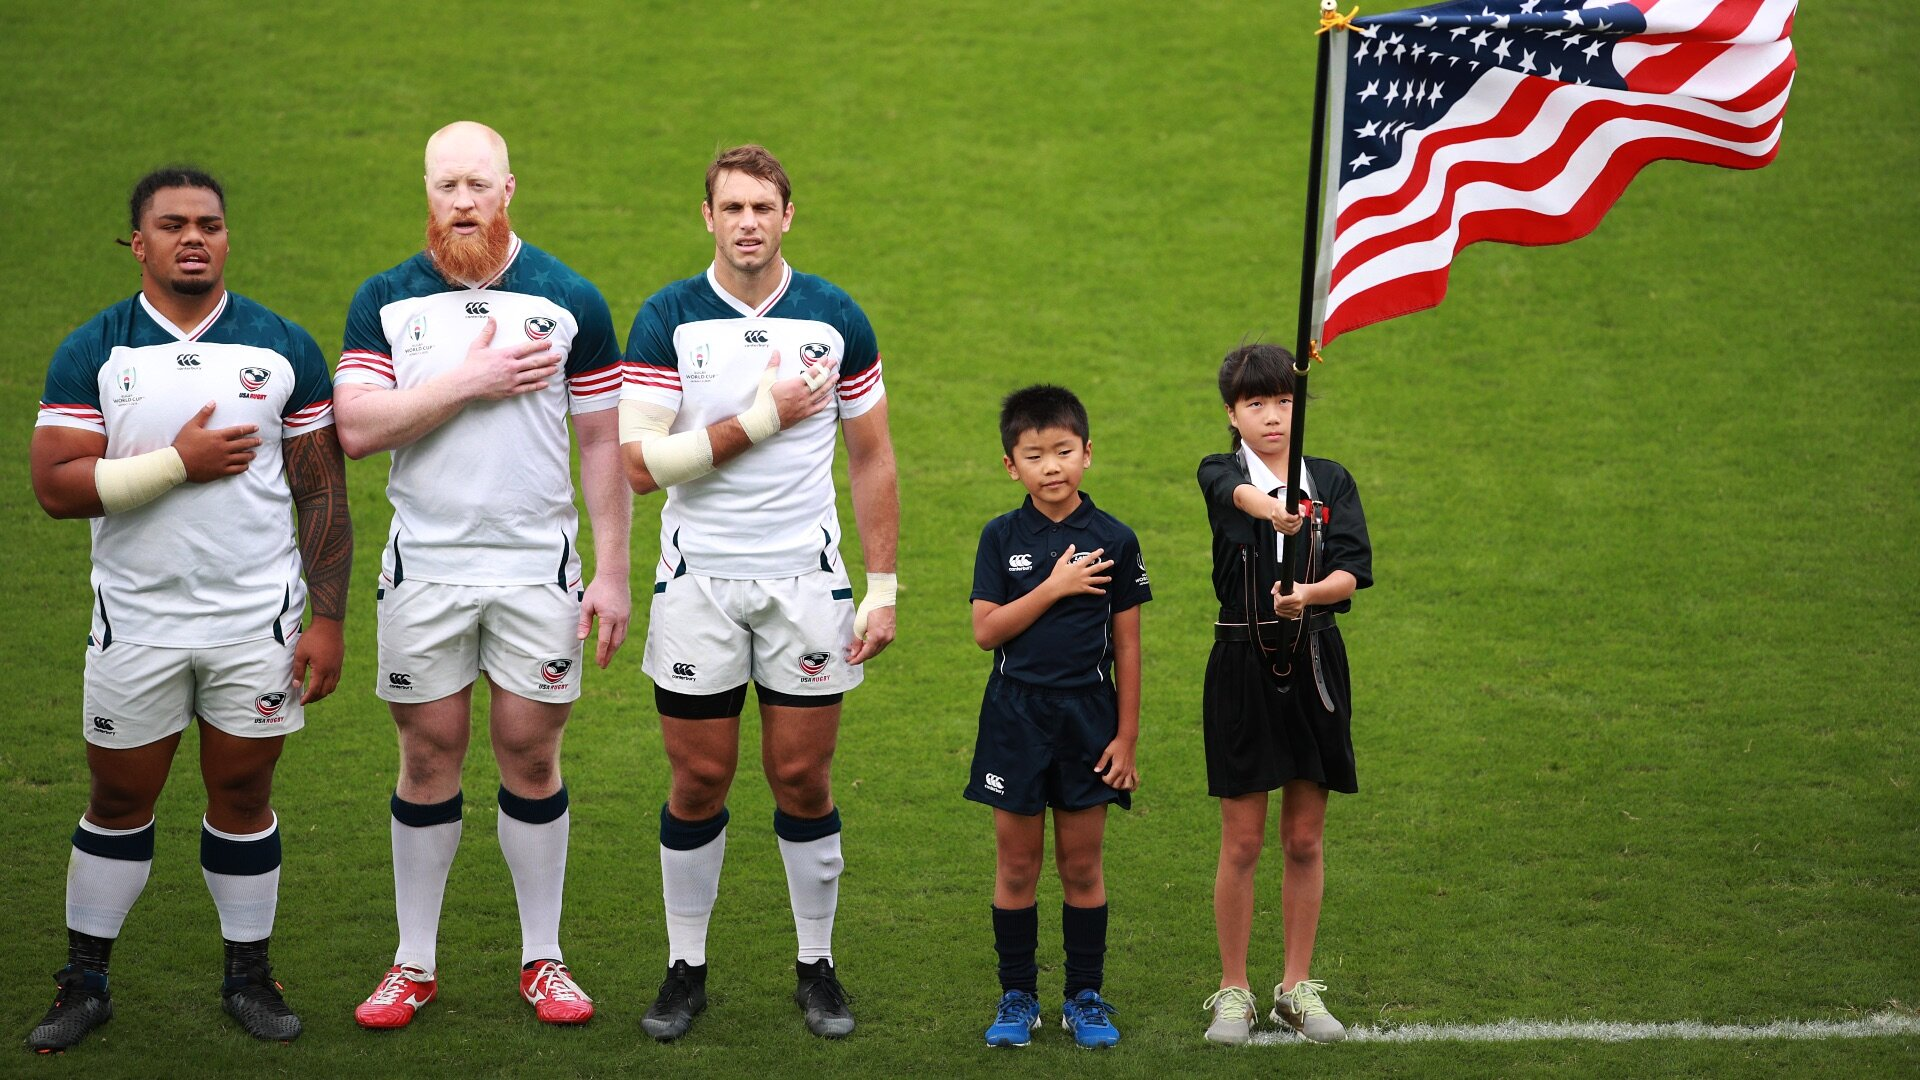 'It's no secret that USA Rugby have been financially f***** for years'